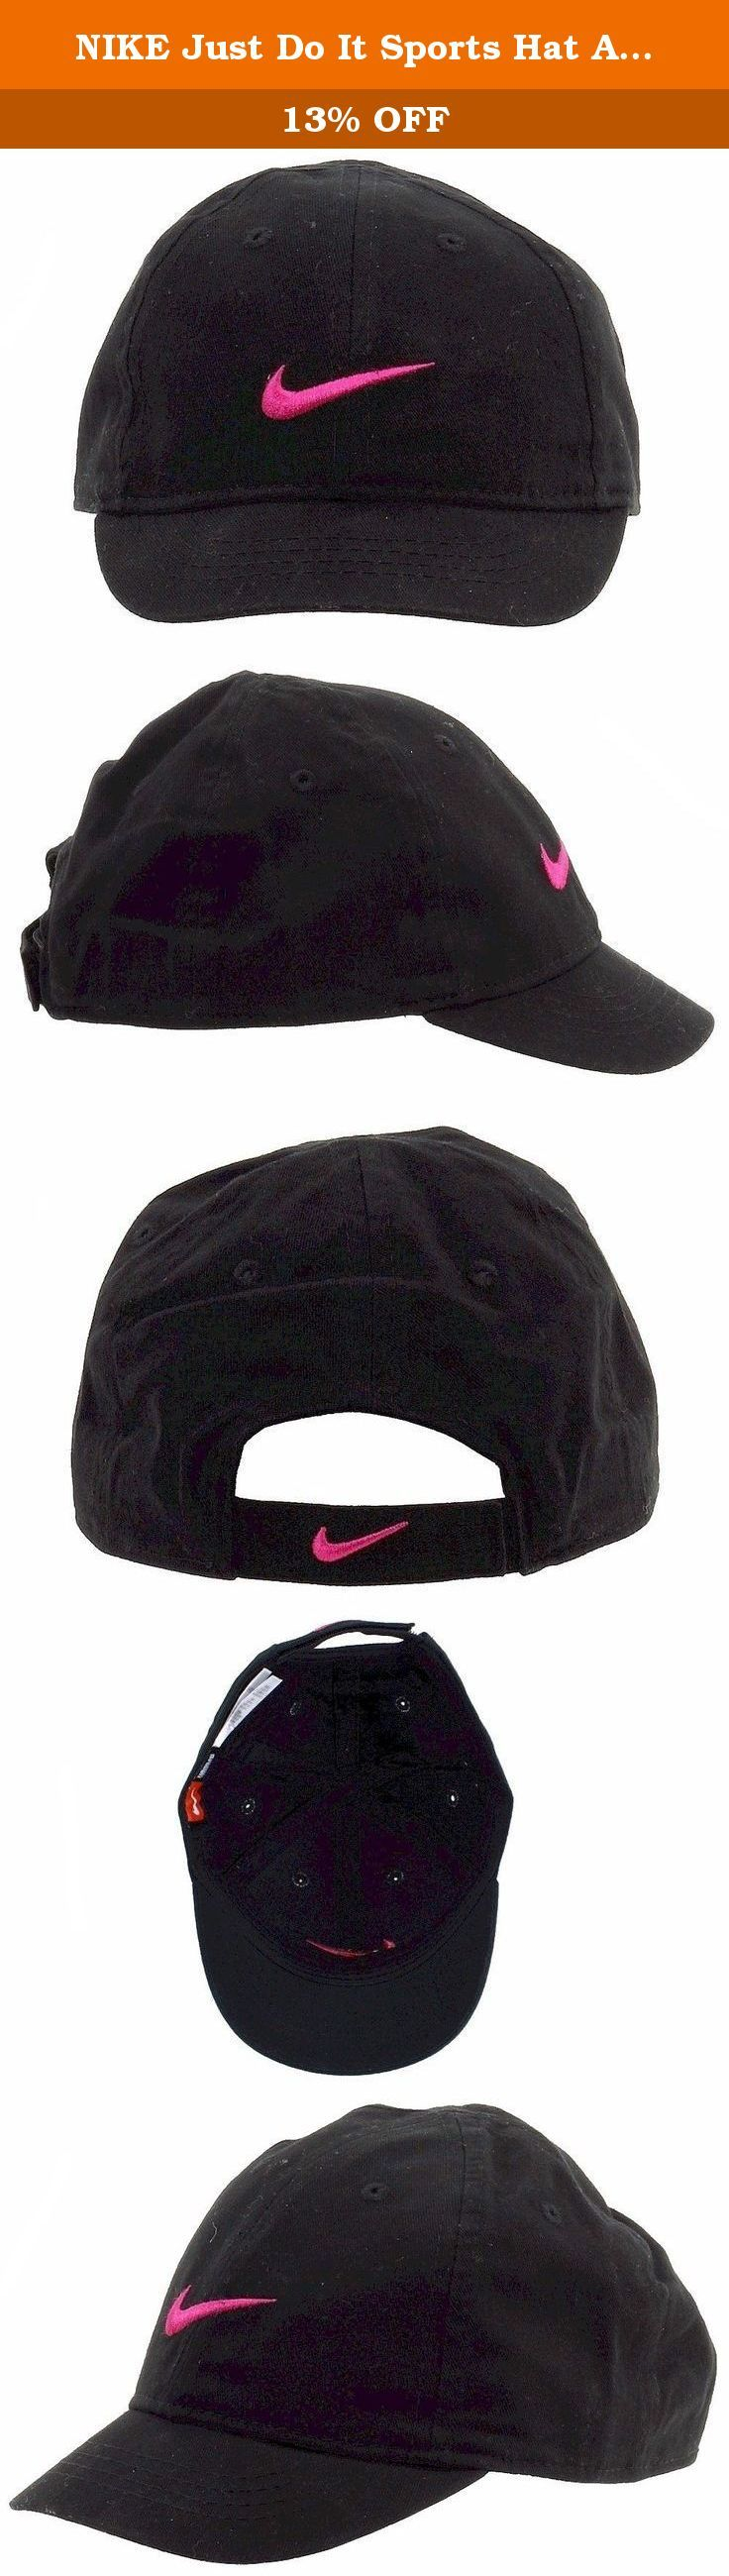 NIKE Just Do It Sports Hat Adjustable Sun Cap (4-6X) (Black w/ Signature Berry Swoosh). It started with a handshake between two visionary Oregonians - Bowerman and his University of Oregon runner Phil Knight. They and the people they hired evolved and grew the company that became Nike from a U.S. based footwear distributor to a global marketer of athletic footwear, apparel and equipment that is unrivaled in the world.